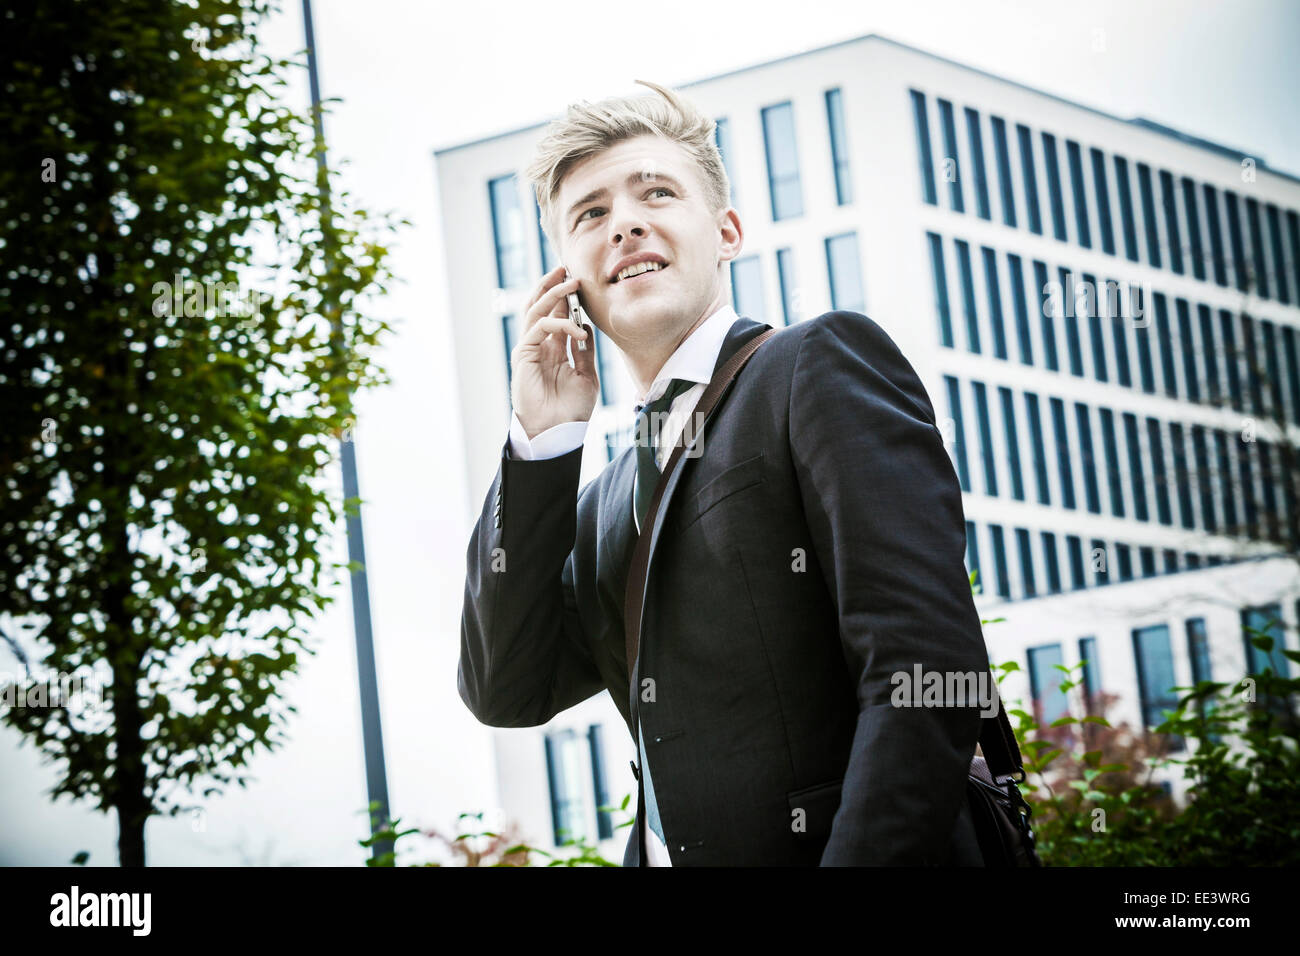 Young businessman using phone, Munich, Bavaria, Germany - Stock Image